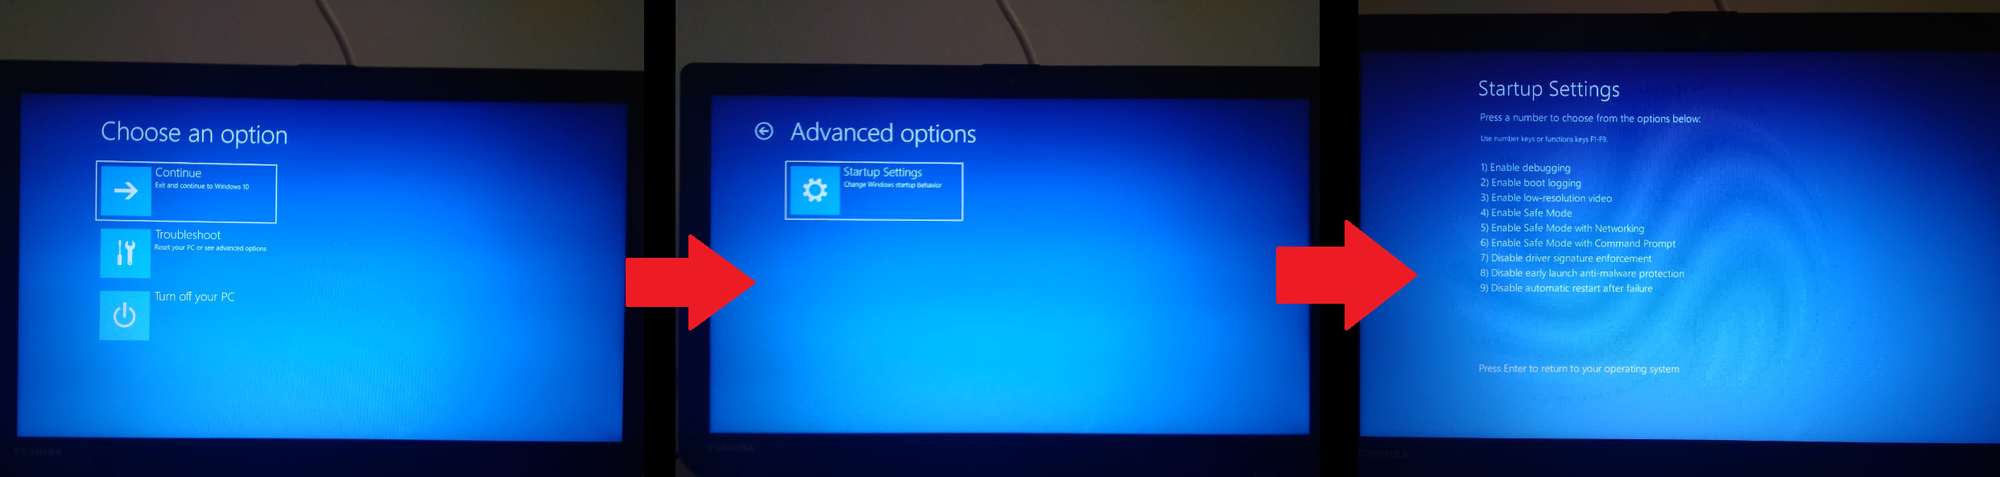 My Windows 10 advanced startup doesn't show the regular options